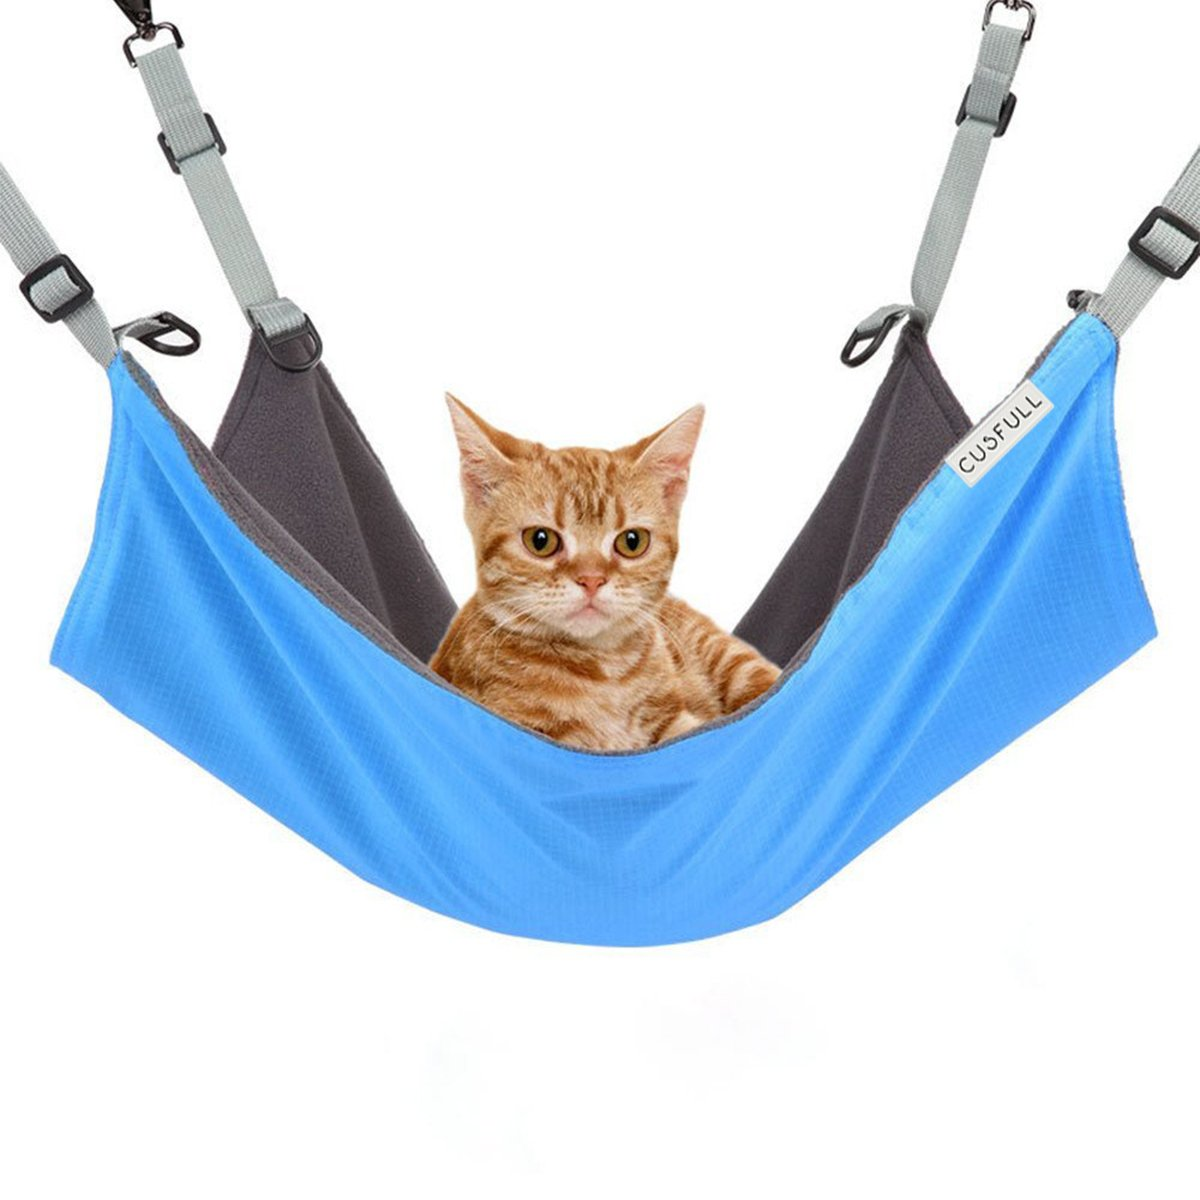 Cusfull Cat Hammock Bed Comfortable Hanging Pet Hammock Bed for Cats Small Dogs Rabbits Other Small Animals 22 x17 in (bluee)